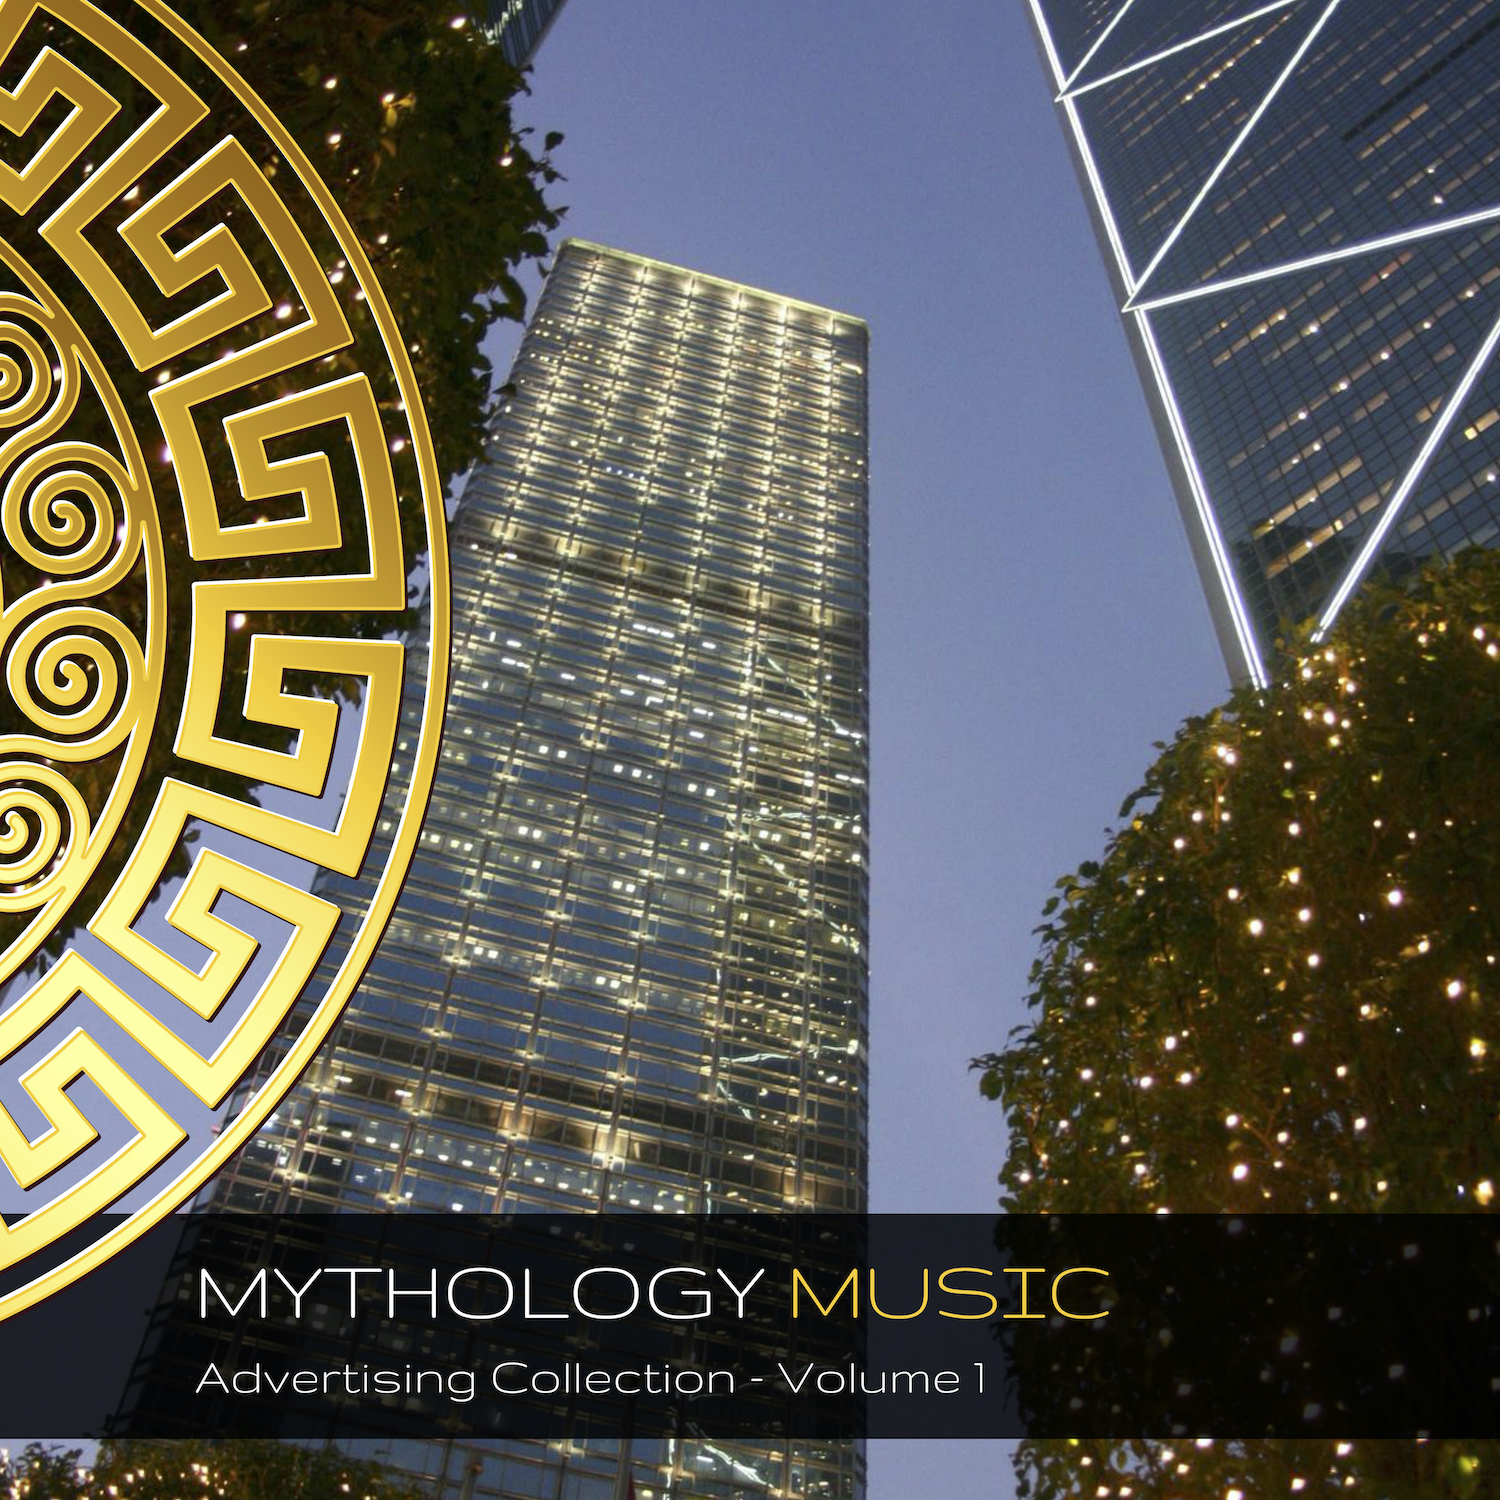 Mythology Music - Advertising Collection